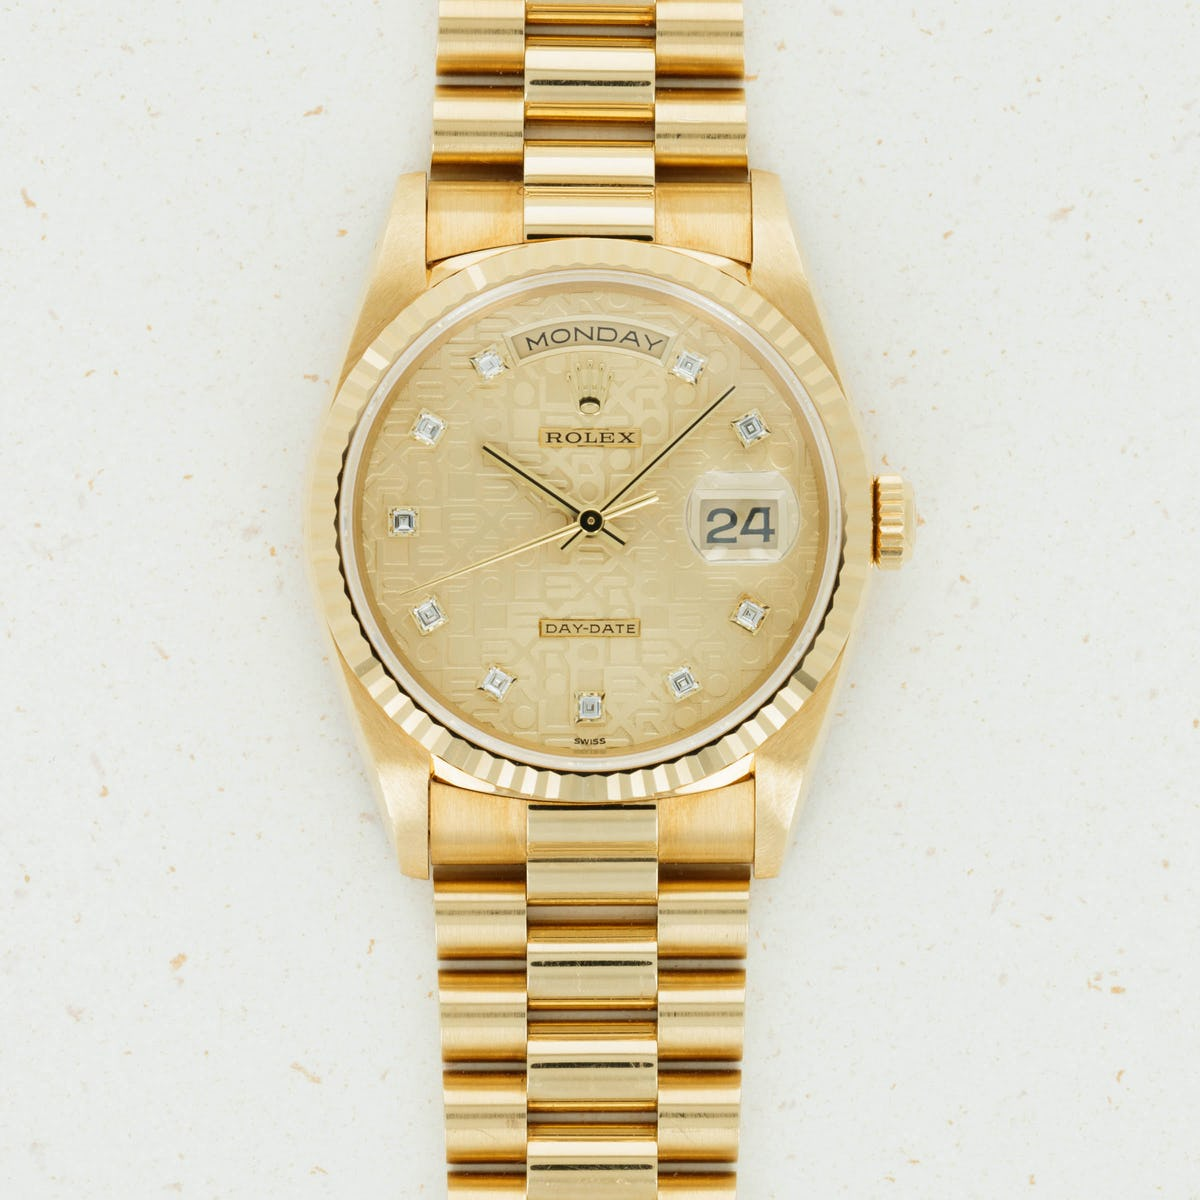 Thumbnail for Rolex Yellow Gold Day-Date Jubilee Diamond 18238